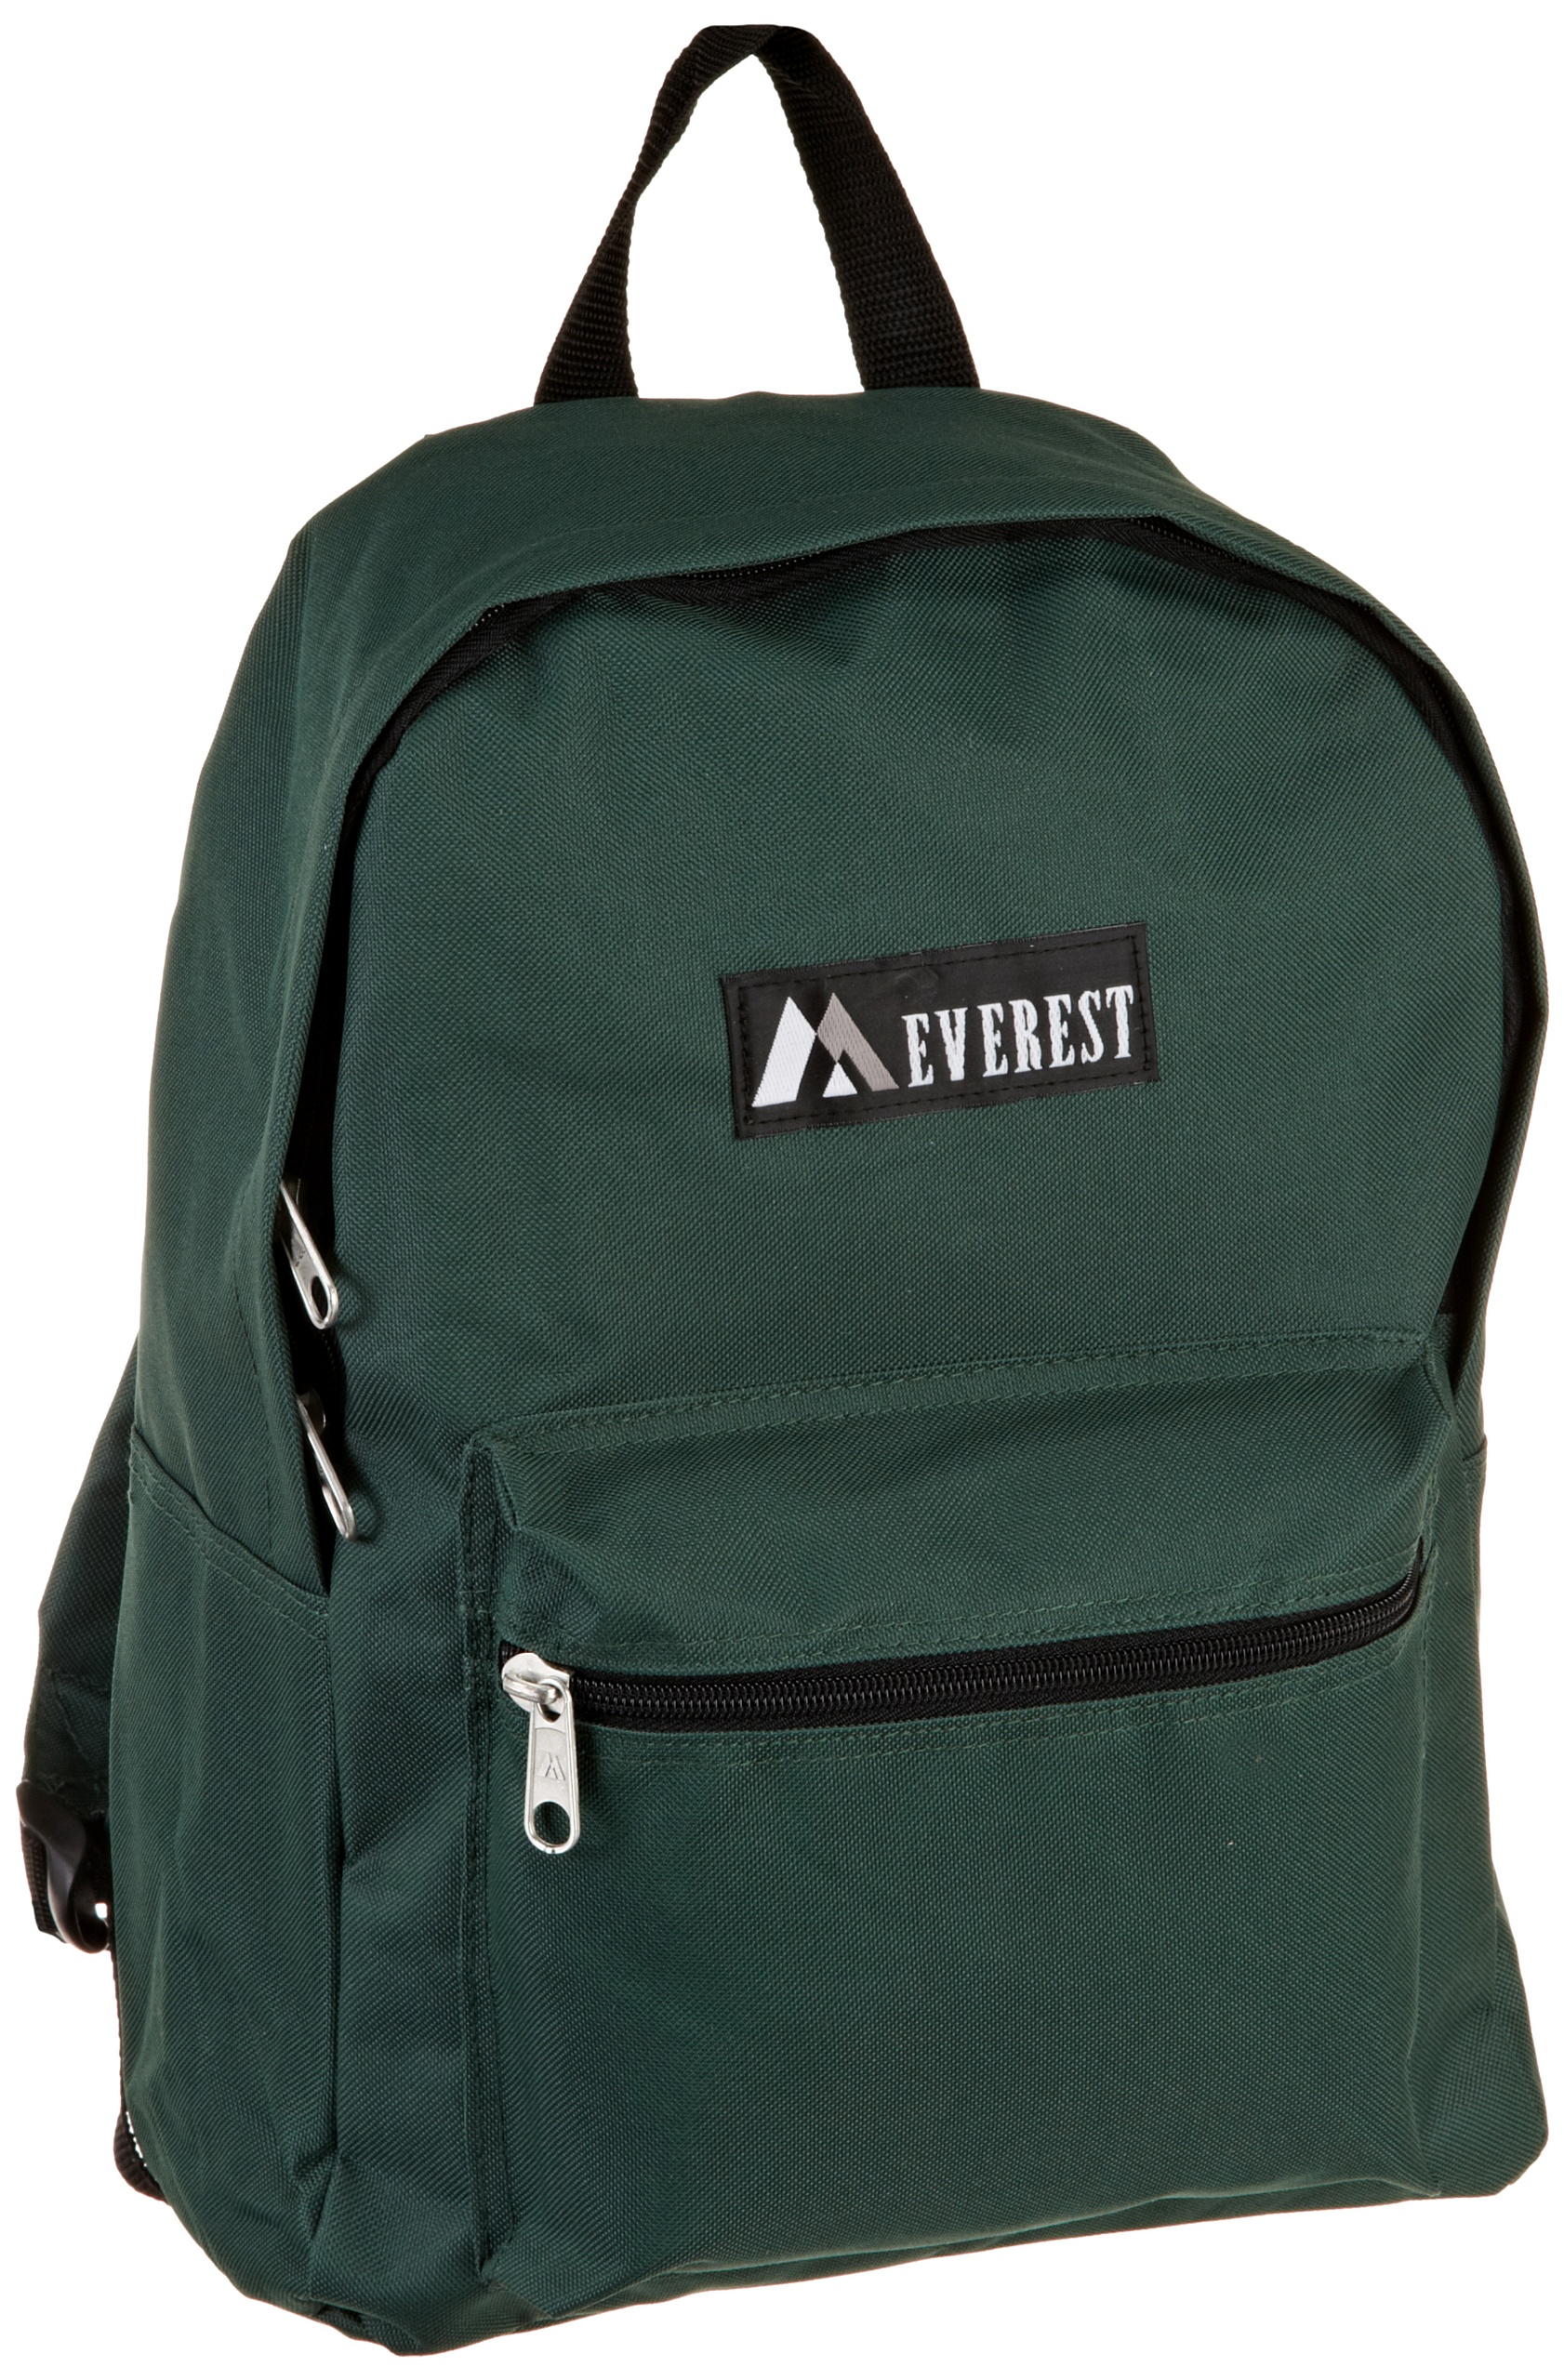 Everest Luggage Basic Backpack, Dark Green, Medium by Everest